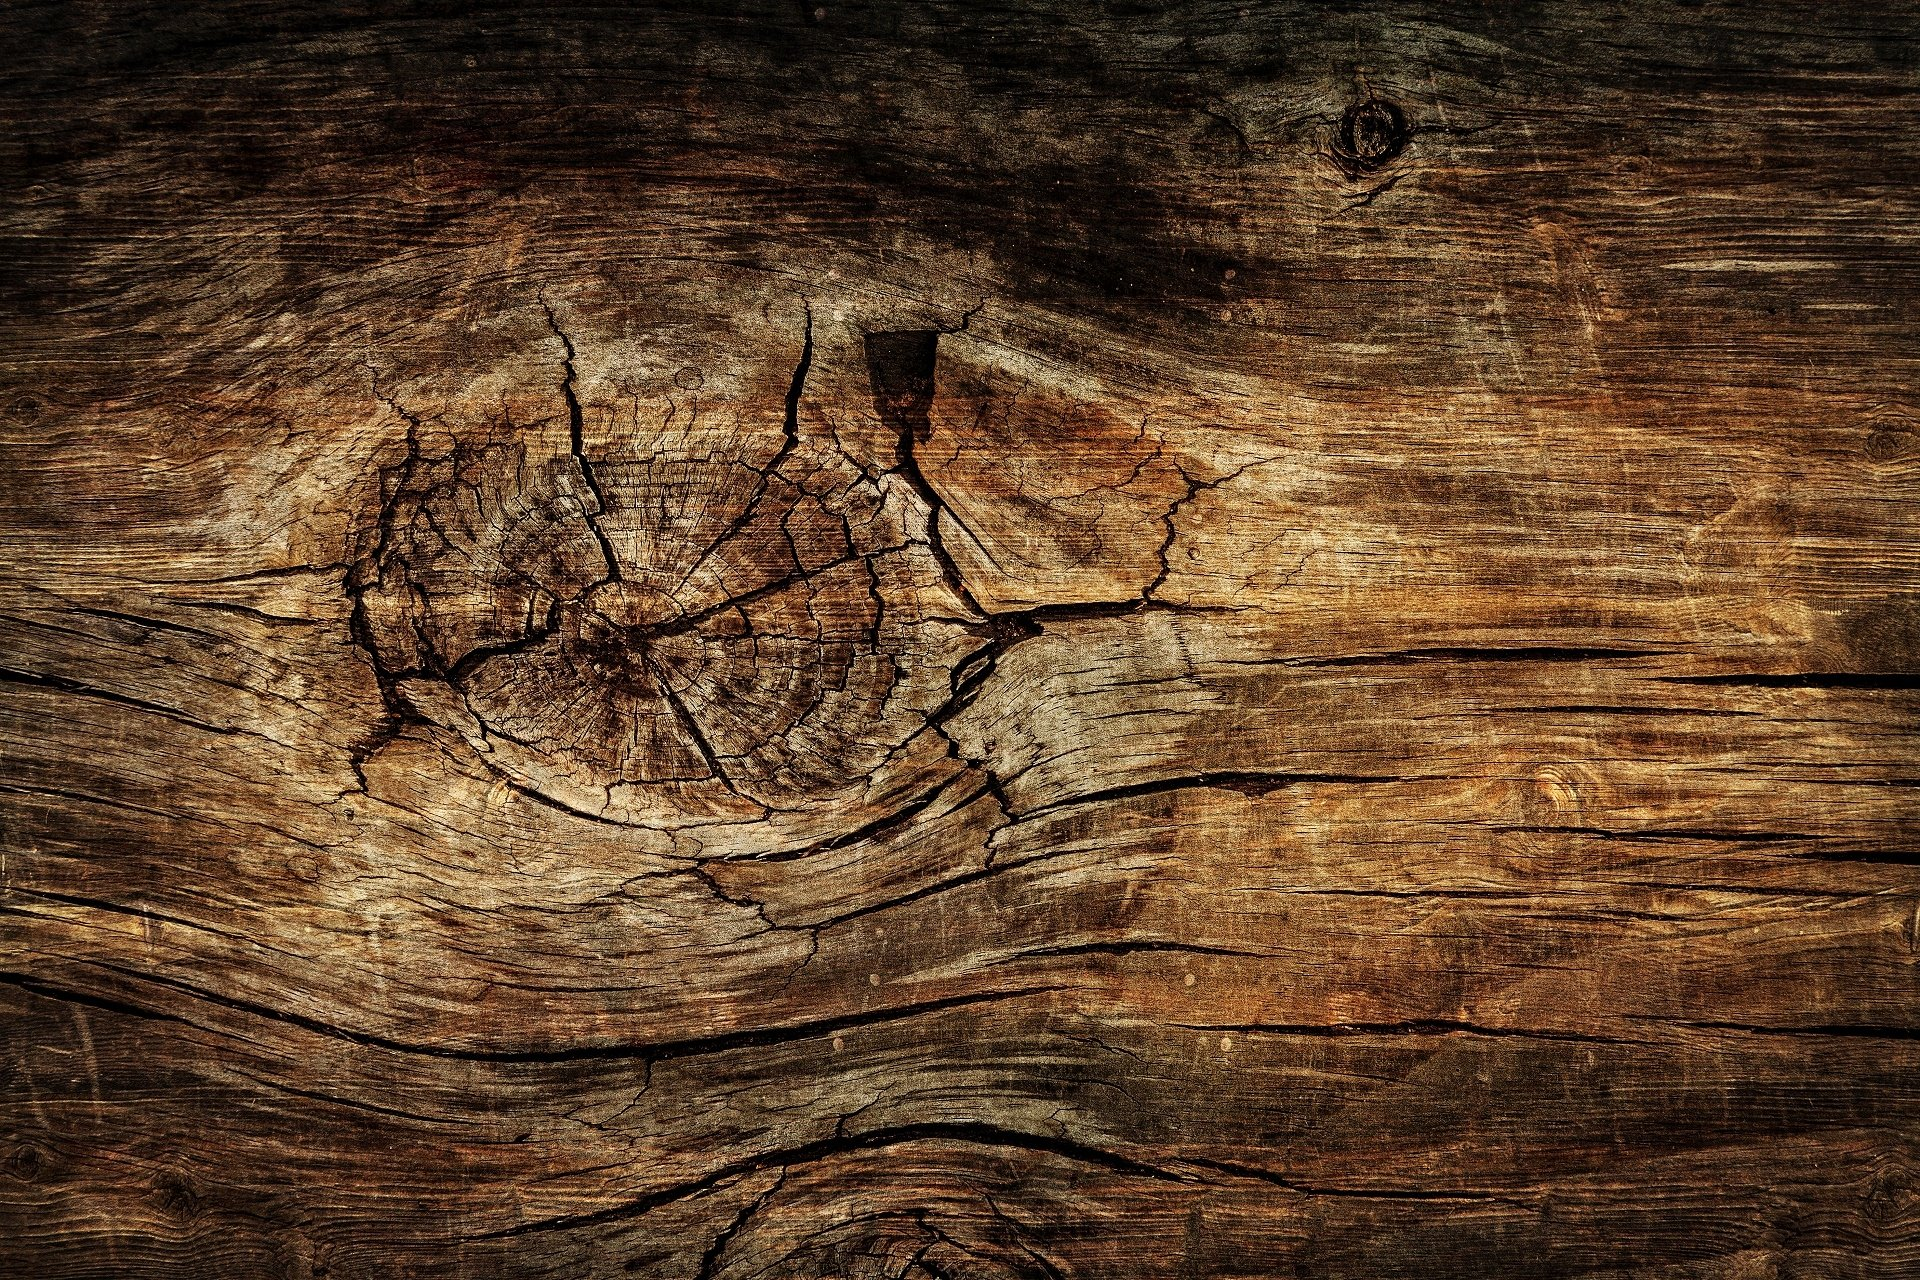 Holz full hd wallpaper and hintergrund 1920x1280 id 720355 for Holz wallpaper